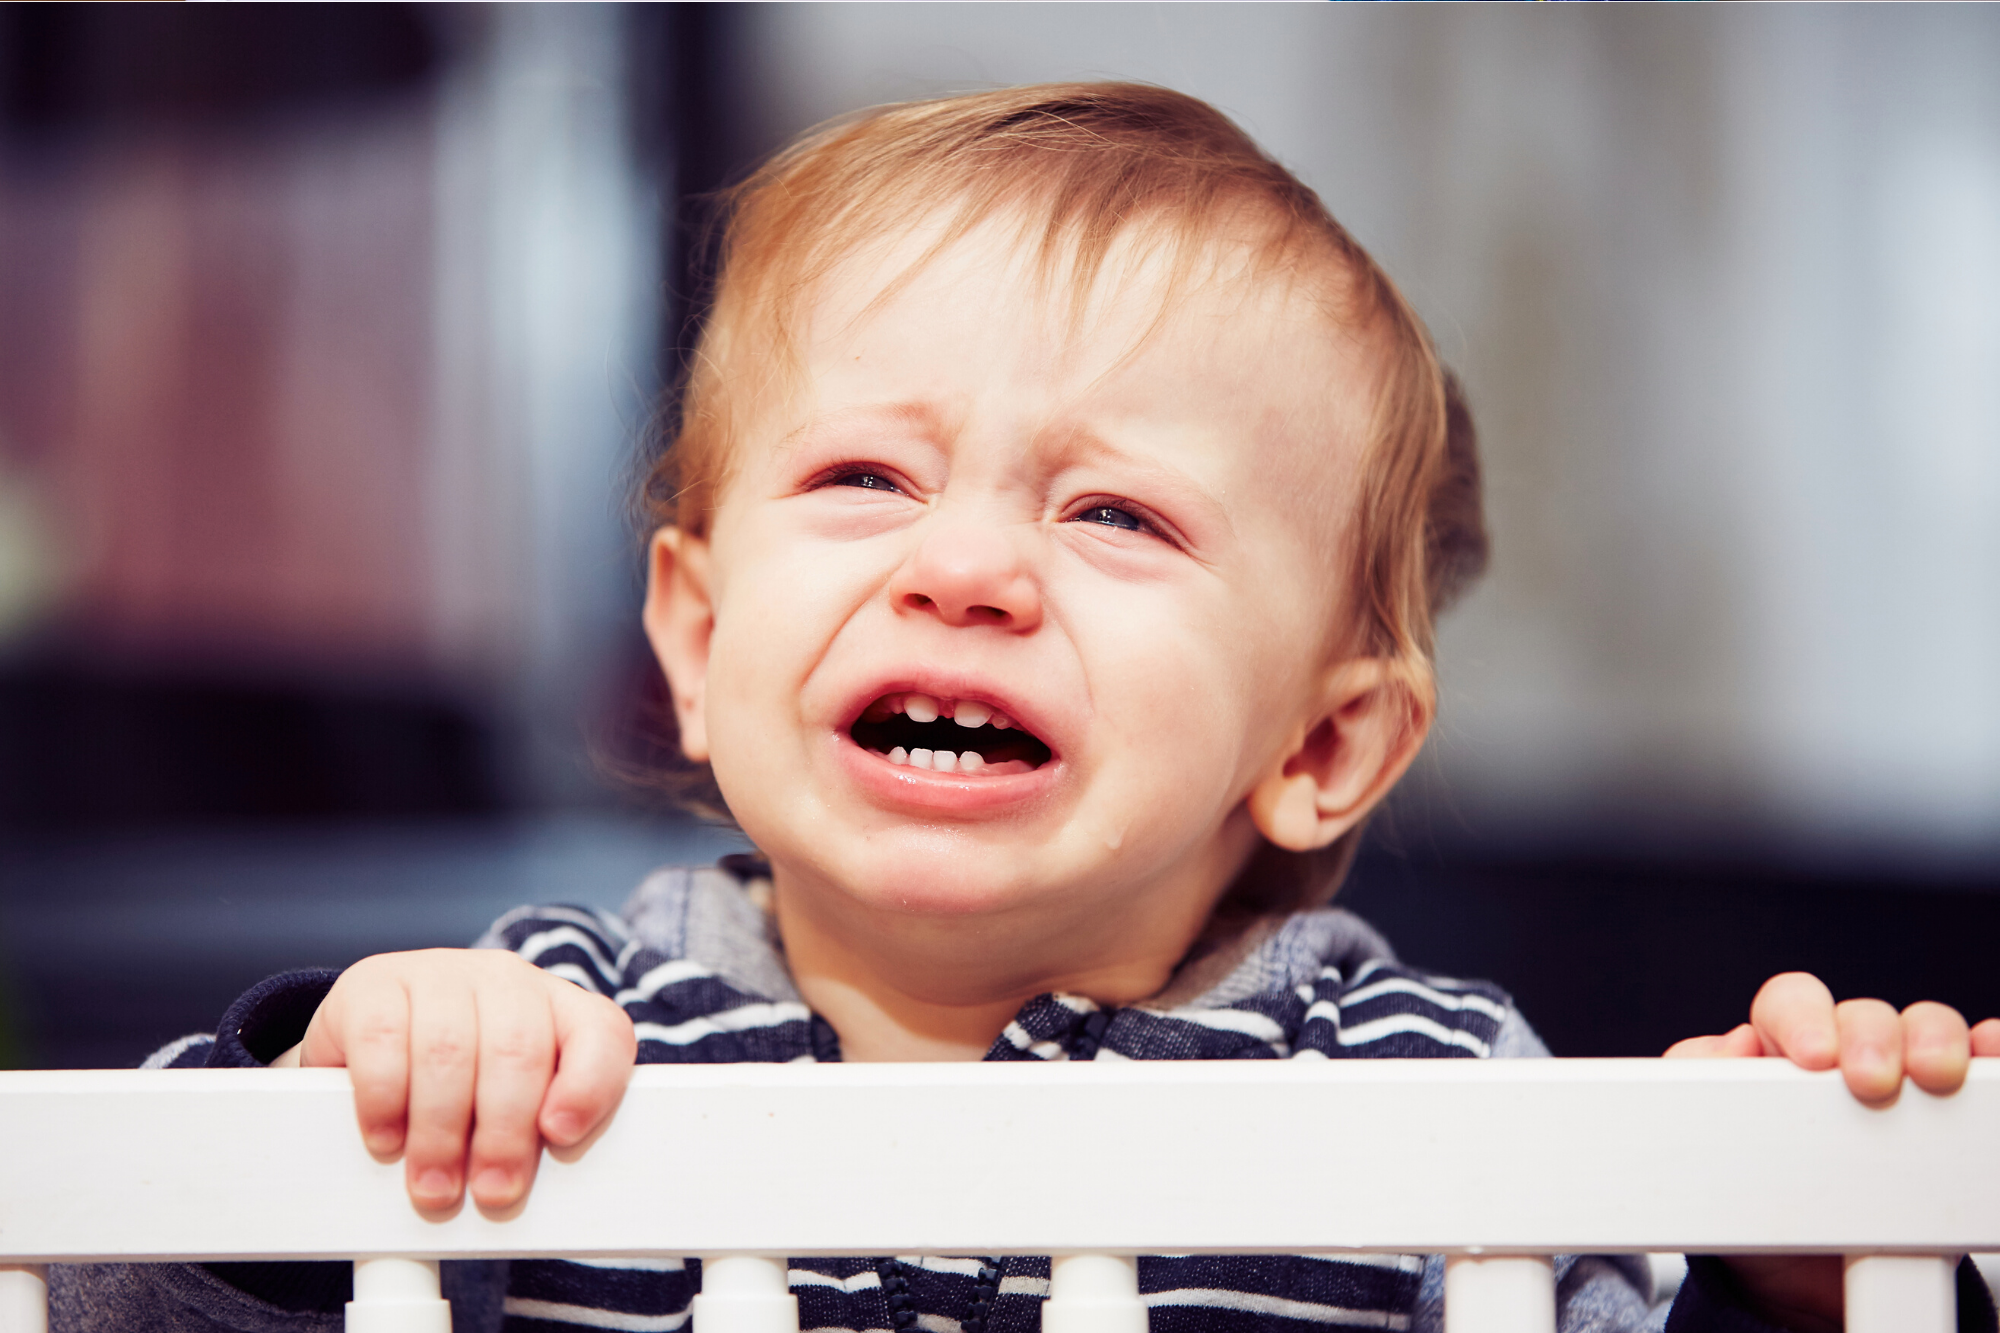 Baby boy crying while holding onto the edge of his cot